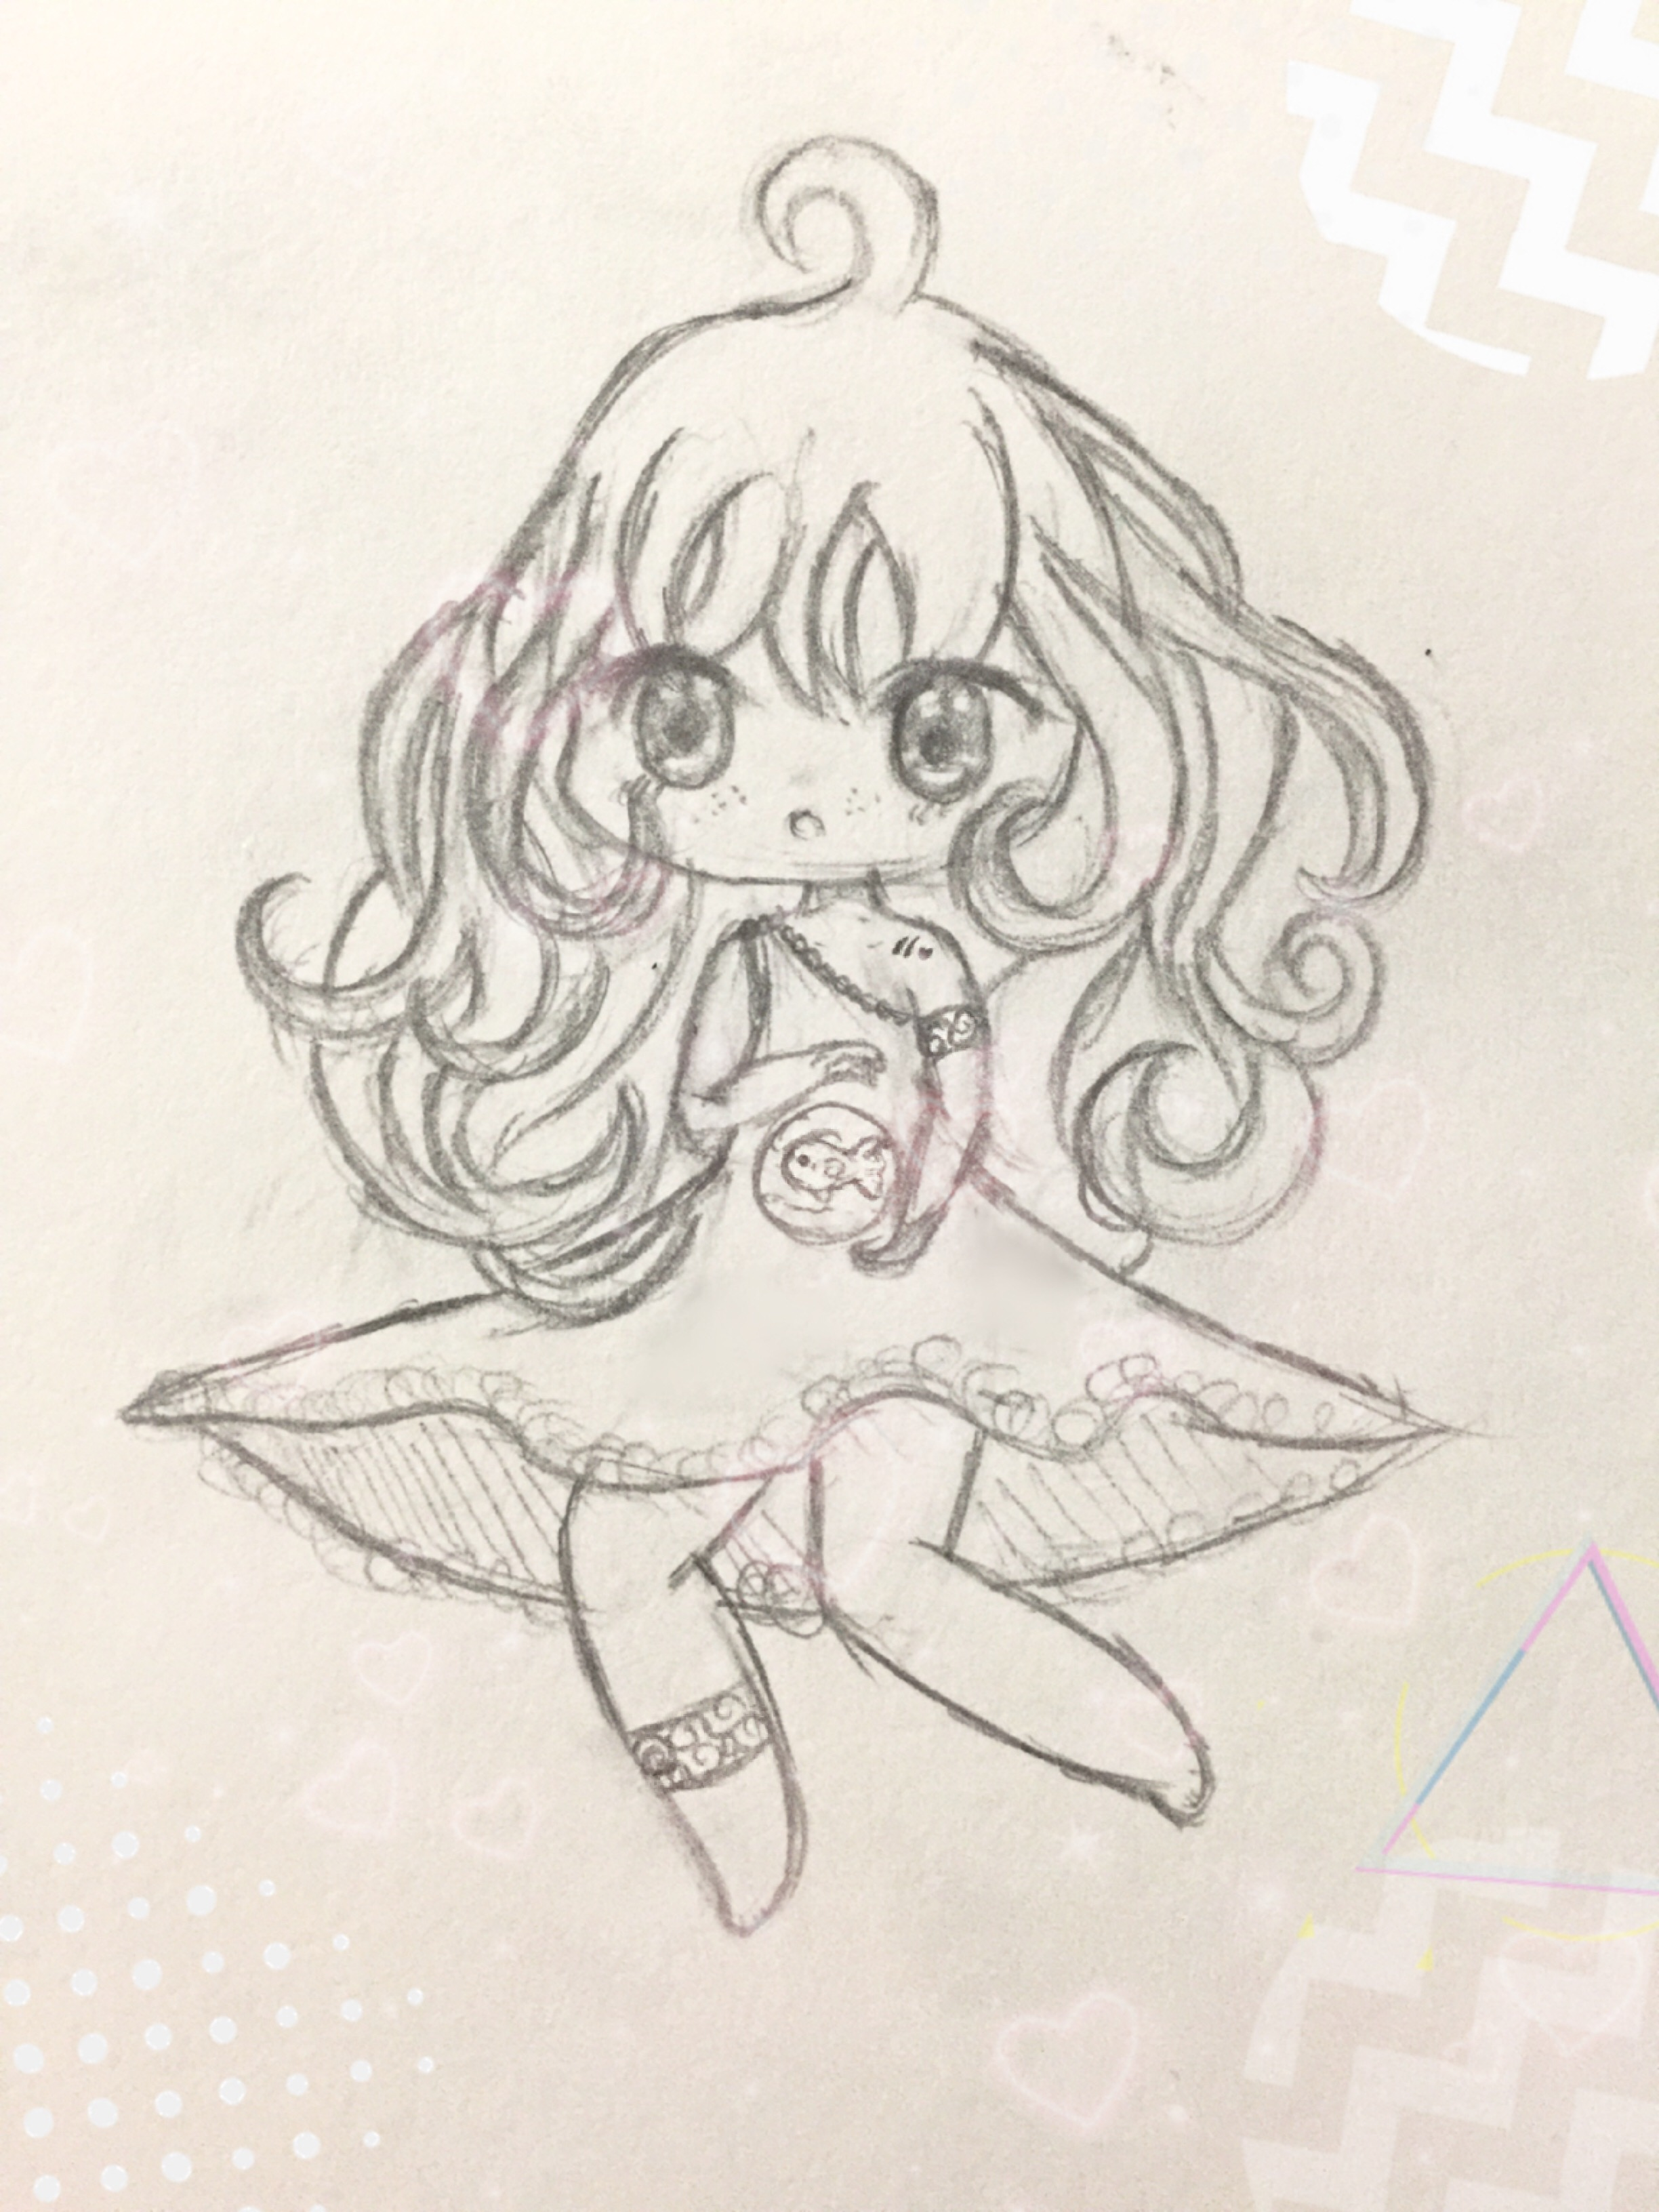 Chibi Body Proportions : chibi, proportions, Chibi, Image, Pollen.and.ash